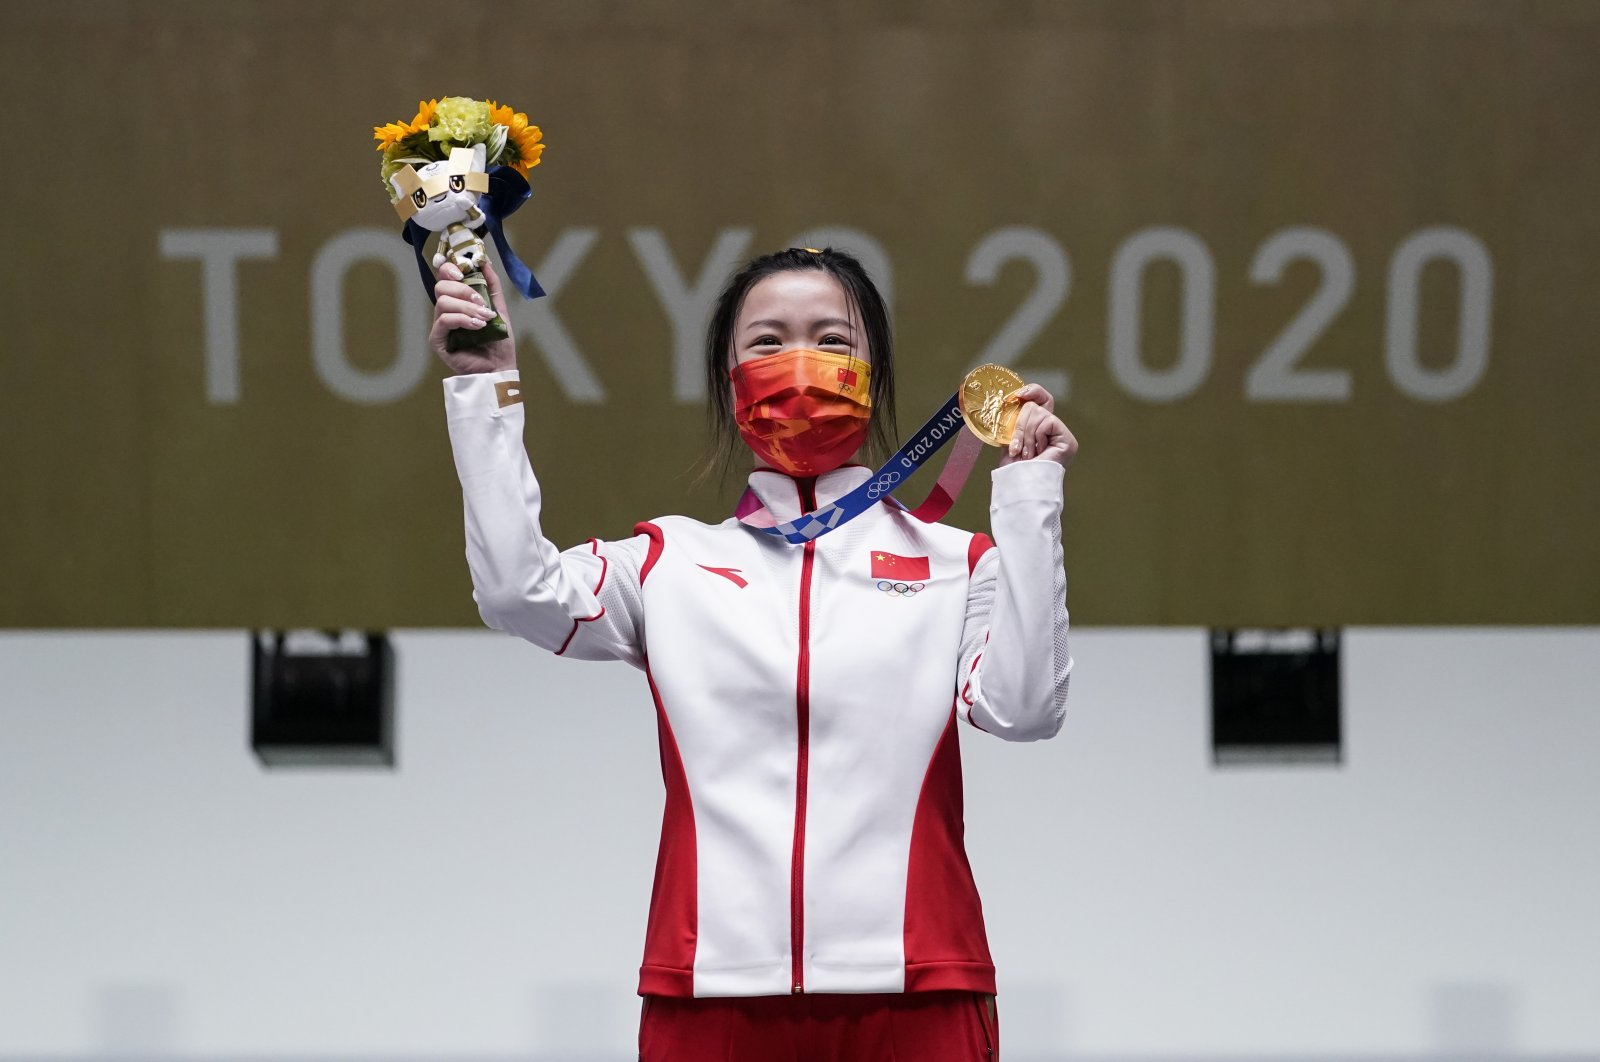 Yang Qian, of China, holds her gold medal after winning the women's 10-meter air rifle at the Asaka Shooting Range in the 2020 Summer Olympics, in Tokyo, Japan, July 24, 2021. (AP Photo)